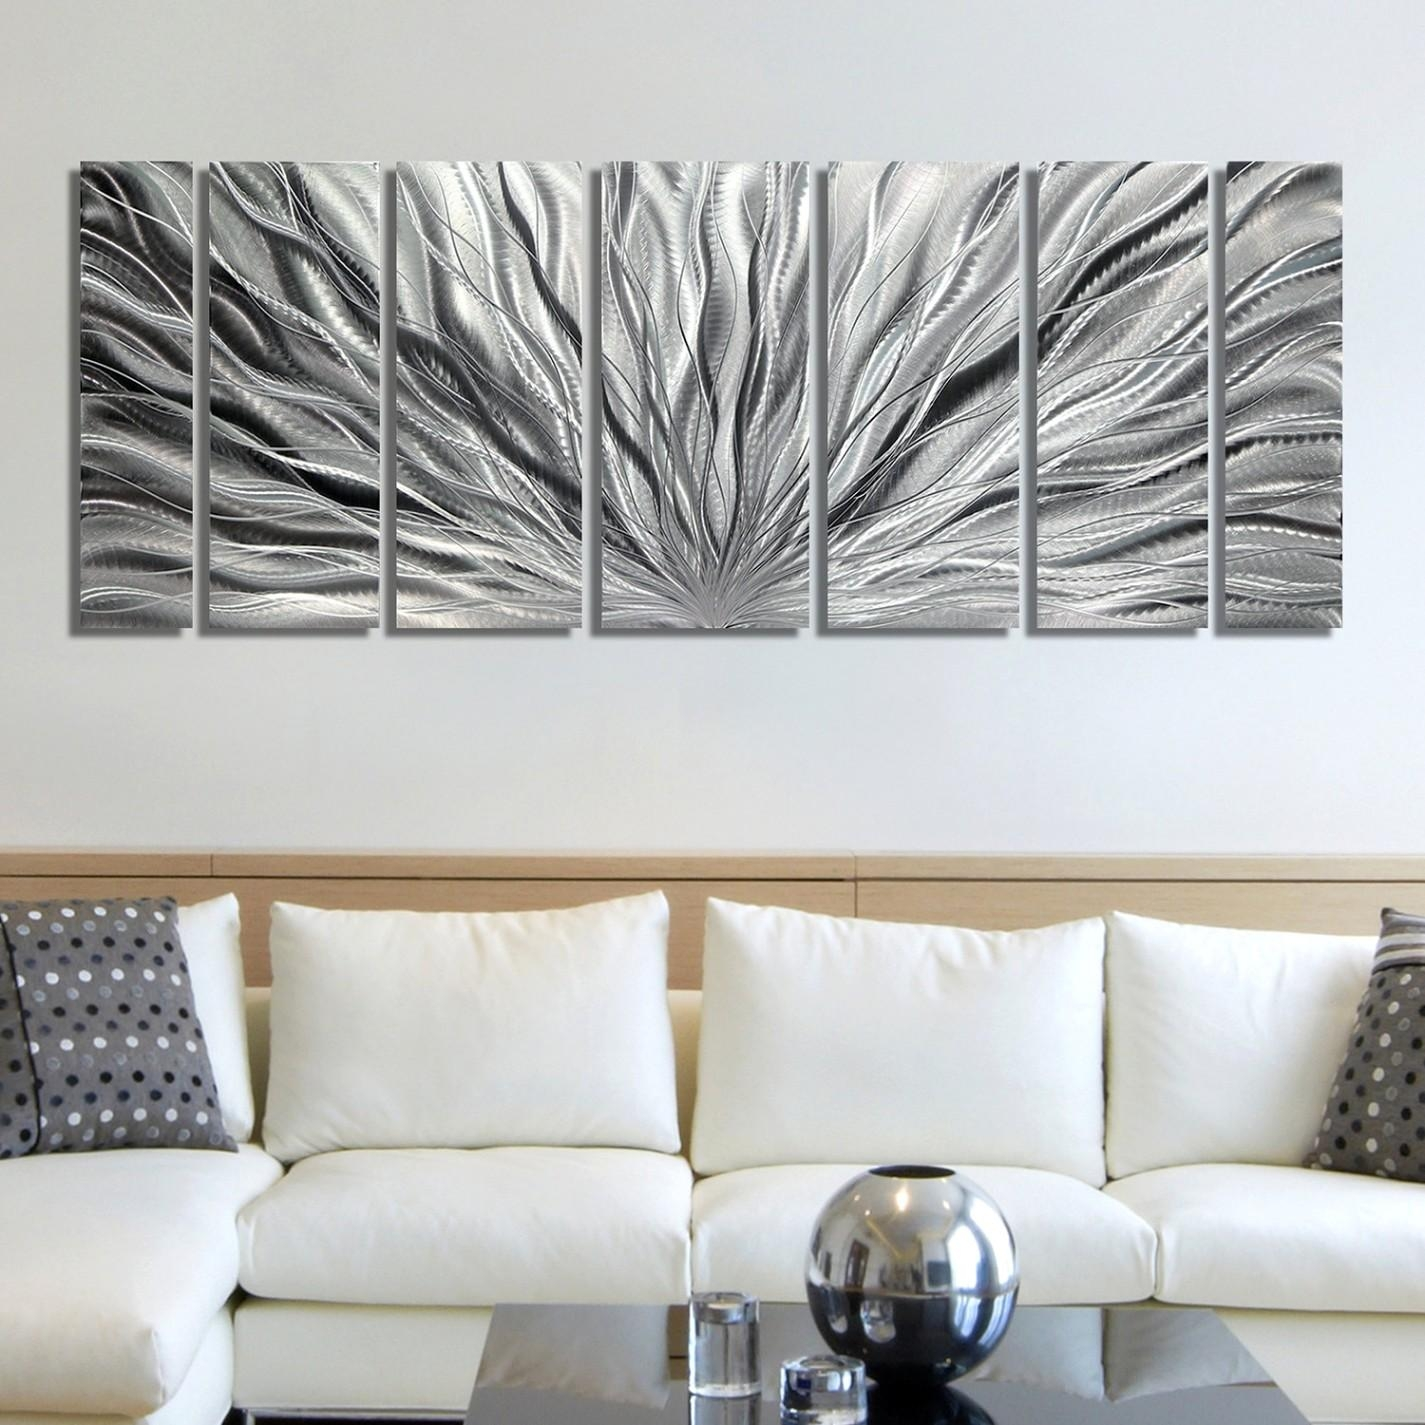 Best Of Unique Modern Wall Art And Decor Pertaining To Unique Modern Wall Art And Decor (View 7 of 20)